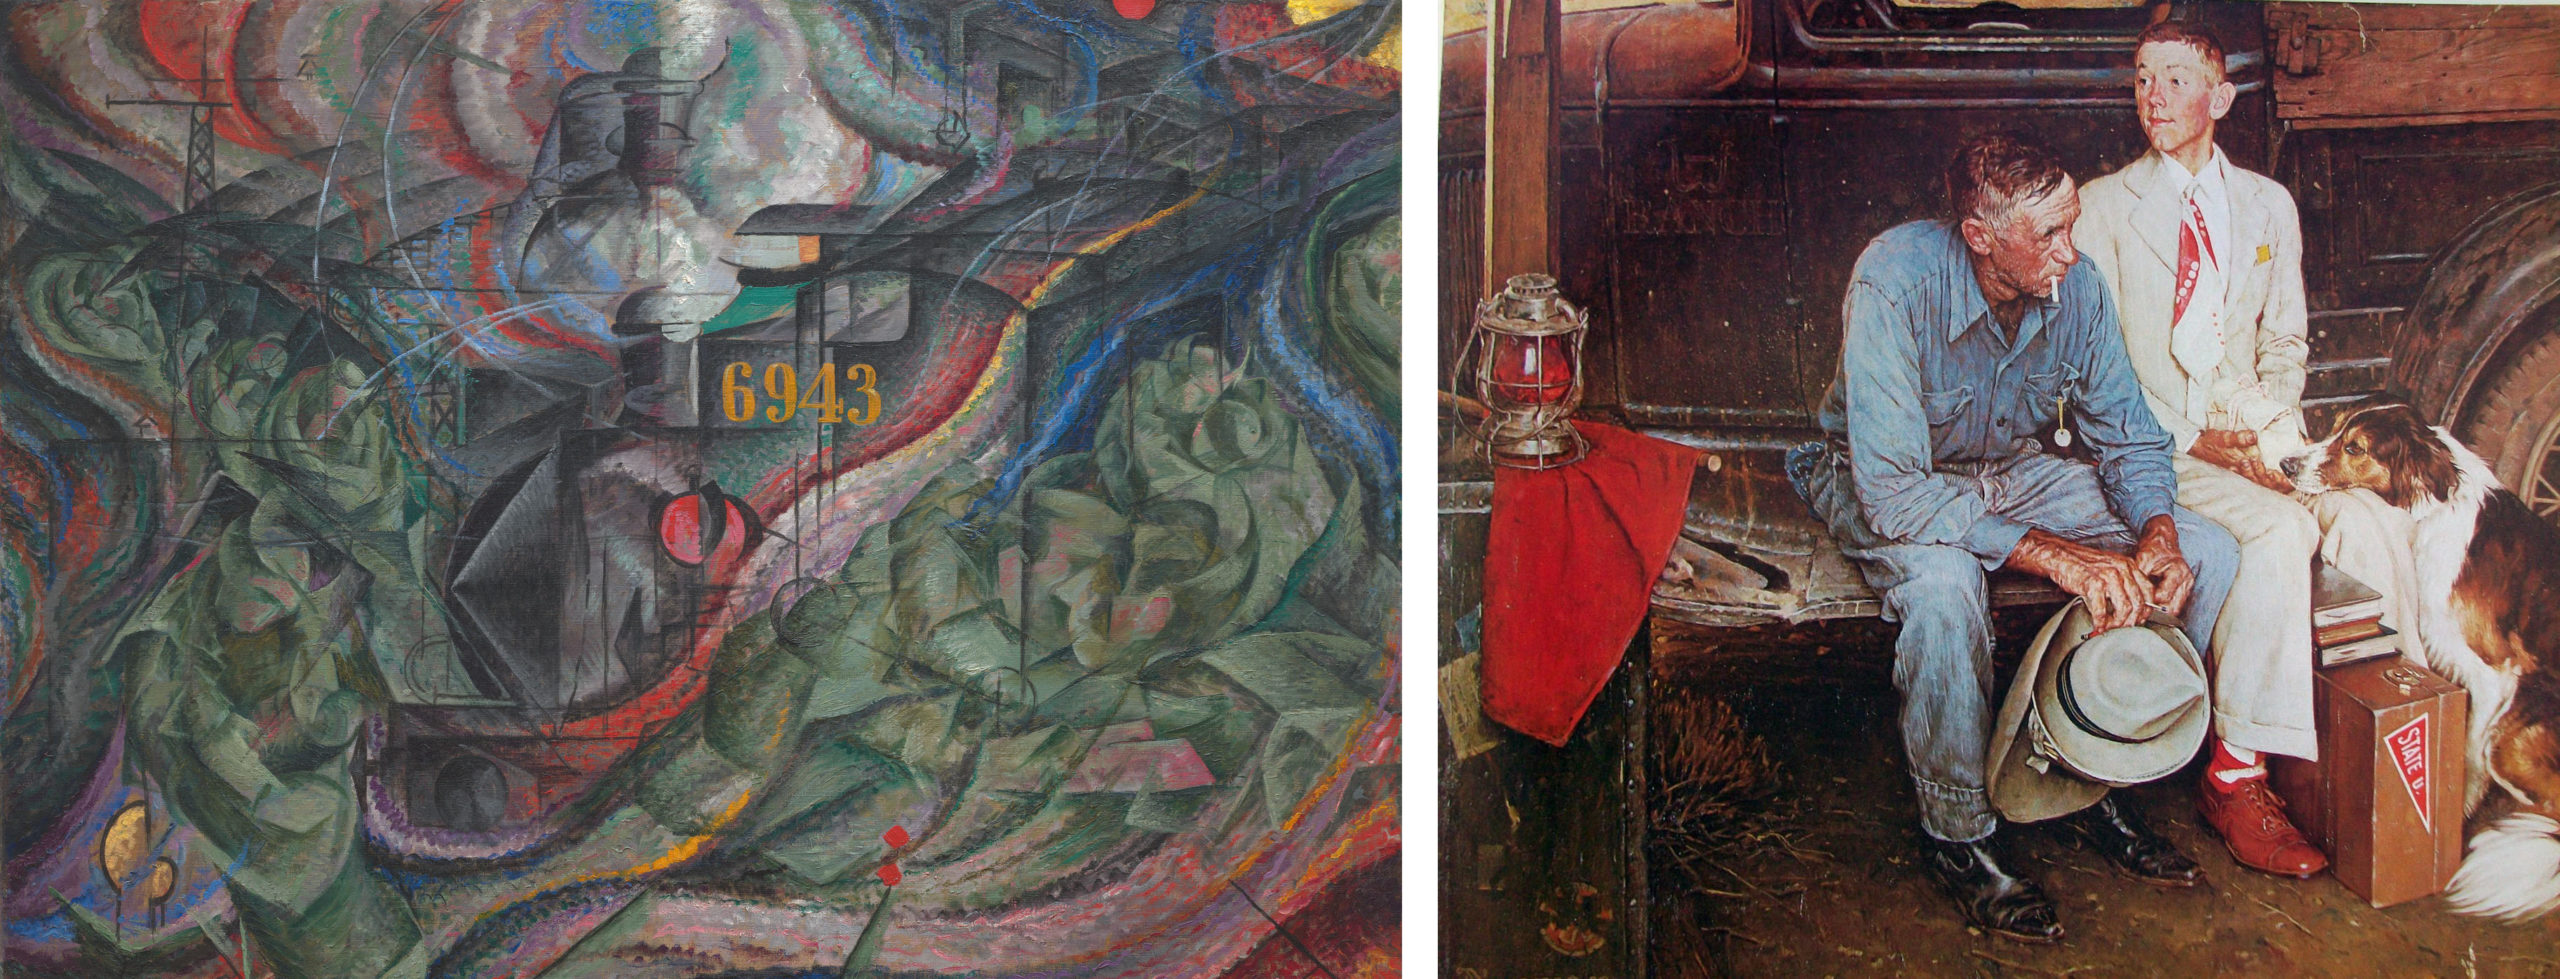 Left: Umberto Boccioni, States of Mind: The Farewells, 1911, oil on canvas, 70.5 x 96.2 cm (MoMA); Right: Norman Rockwell, Breaking Home Ties, 1954, oil on canvas, 112 x 112 cm (private collection)